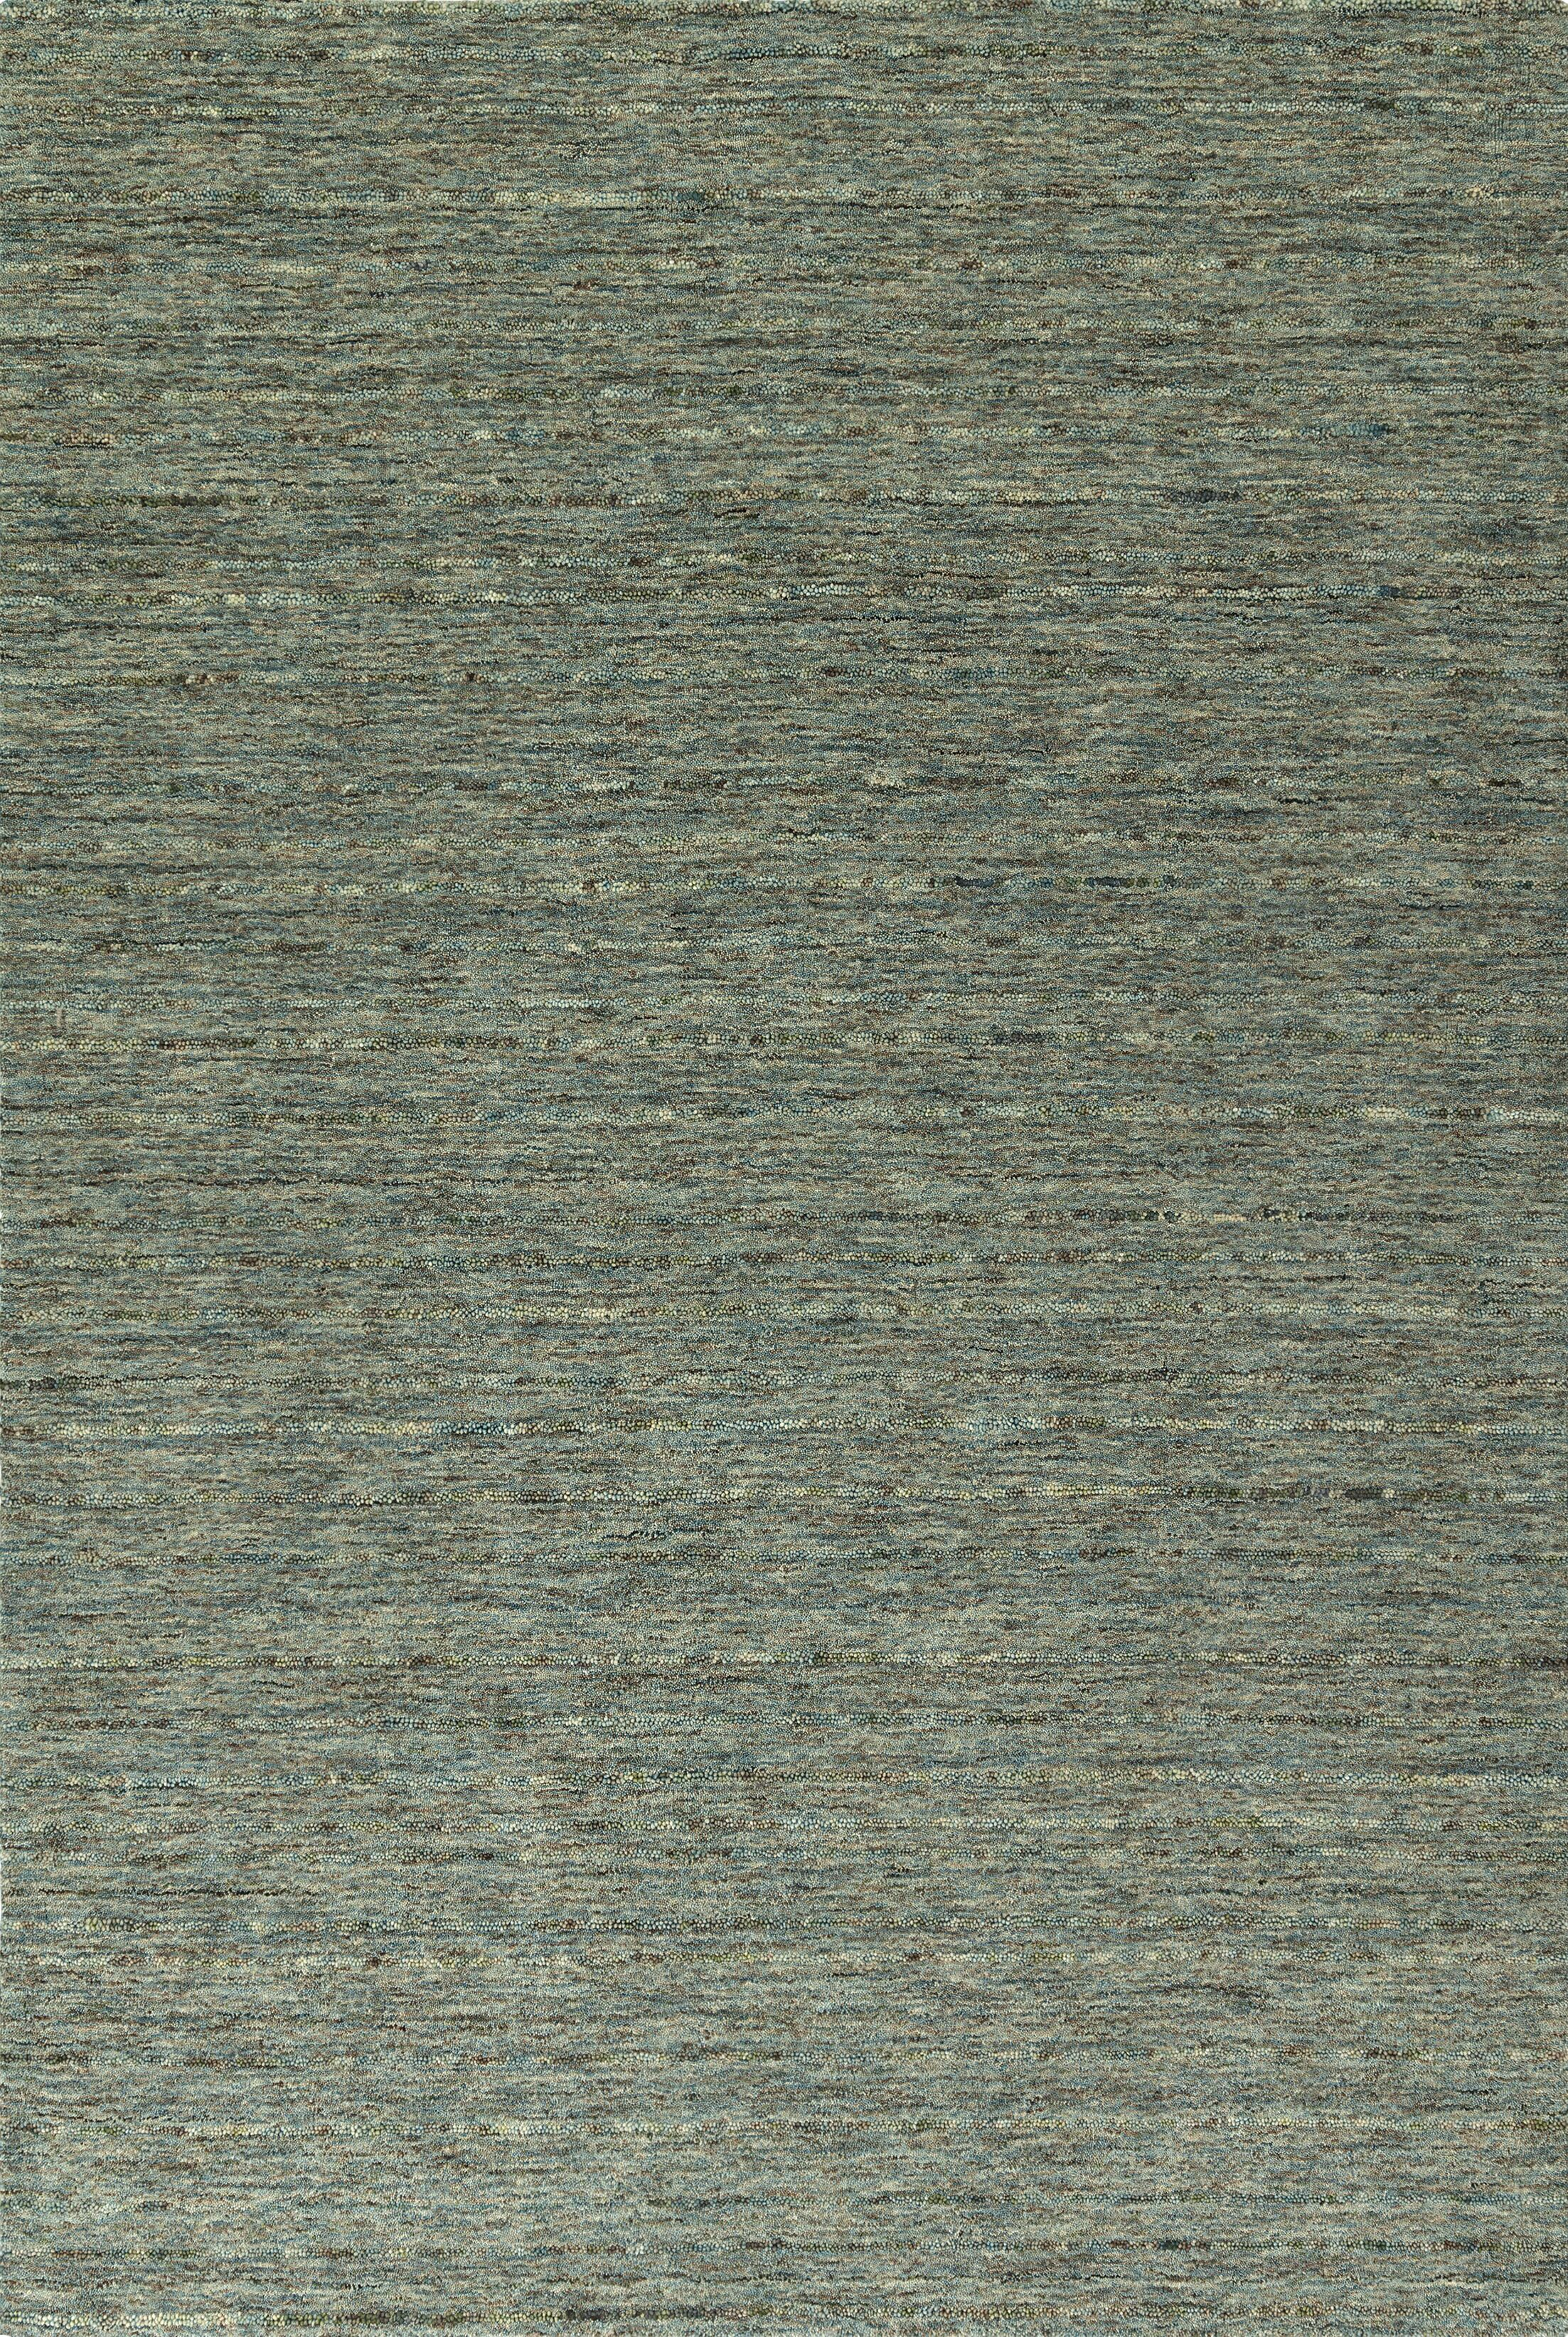 Glenville Hand-Woven Wool Turquoise Area Rug Rug Size: Rectangle 5' x 7'6